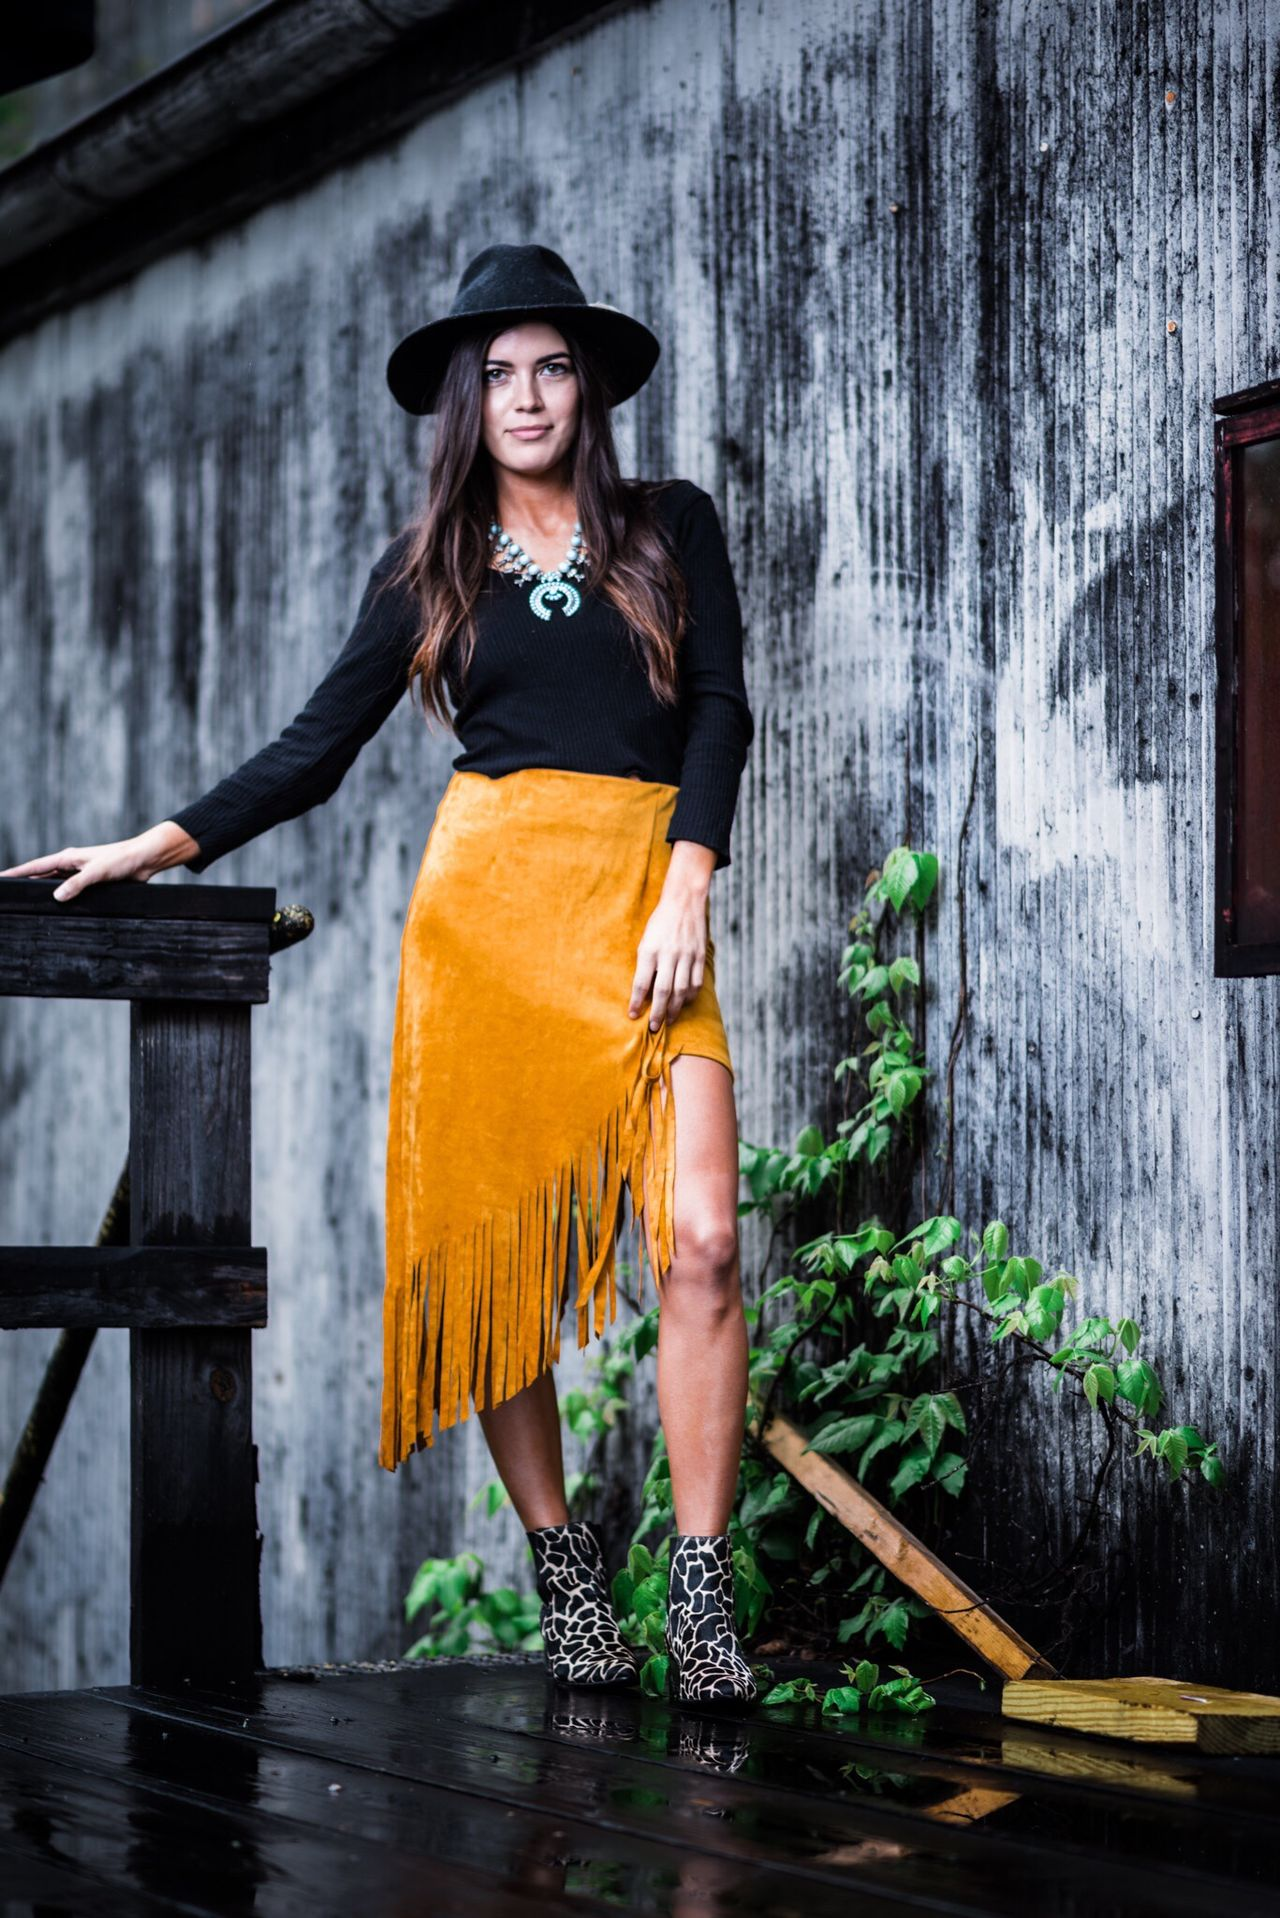 Only Women One Woman Only Adult One Person Beauty Fashion Women Beautiful People Adults Only Beautiful Woman Young Women Portrait One Young Woman Only Females Young Adult People Full Length Fashion Model Outdoors Lifestyles Portrait Of A Woman Portraits